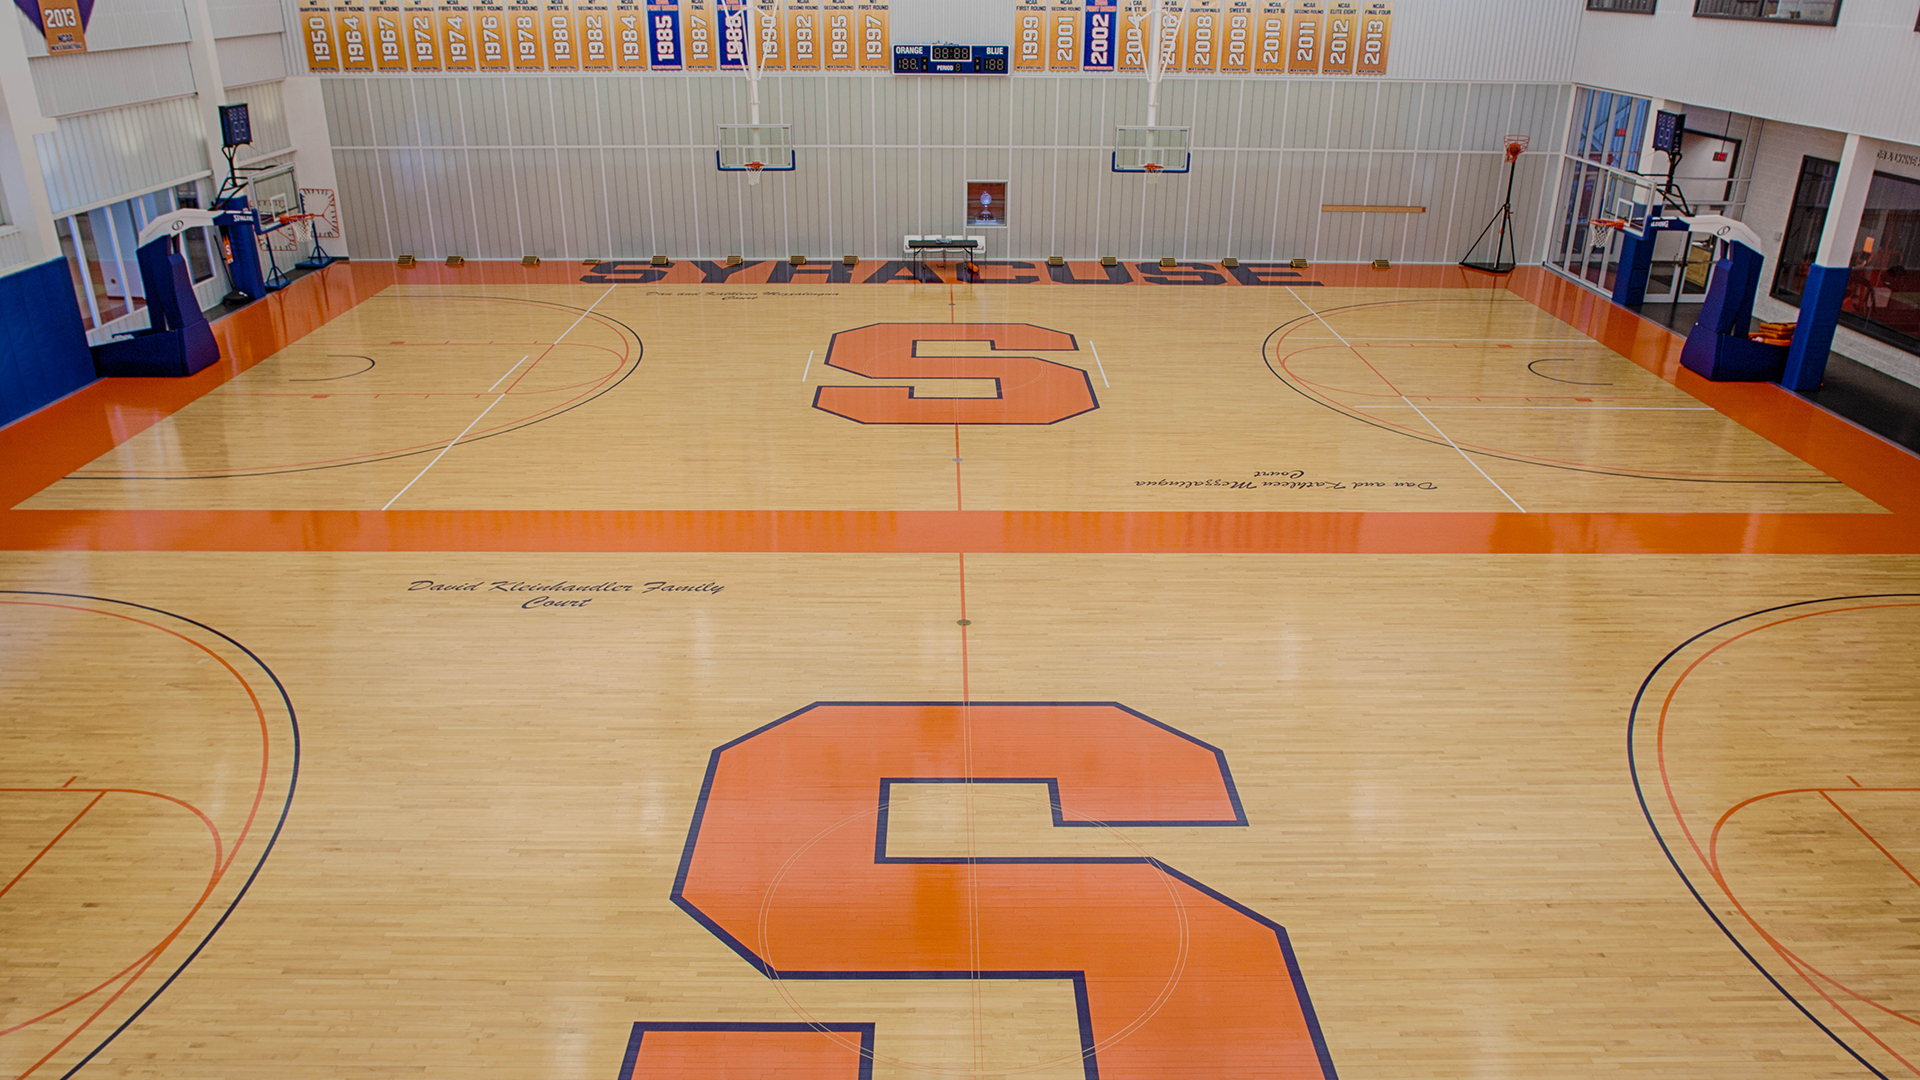 Syracuse Basketball Court Why Do People In Central New York Go Nuts Over Syracuse Basketball Troy Nunes Is An Absolute Magician The Newly Designed Basketball Court In The Carrier Dome Organisme